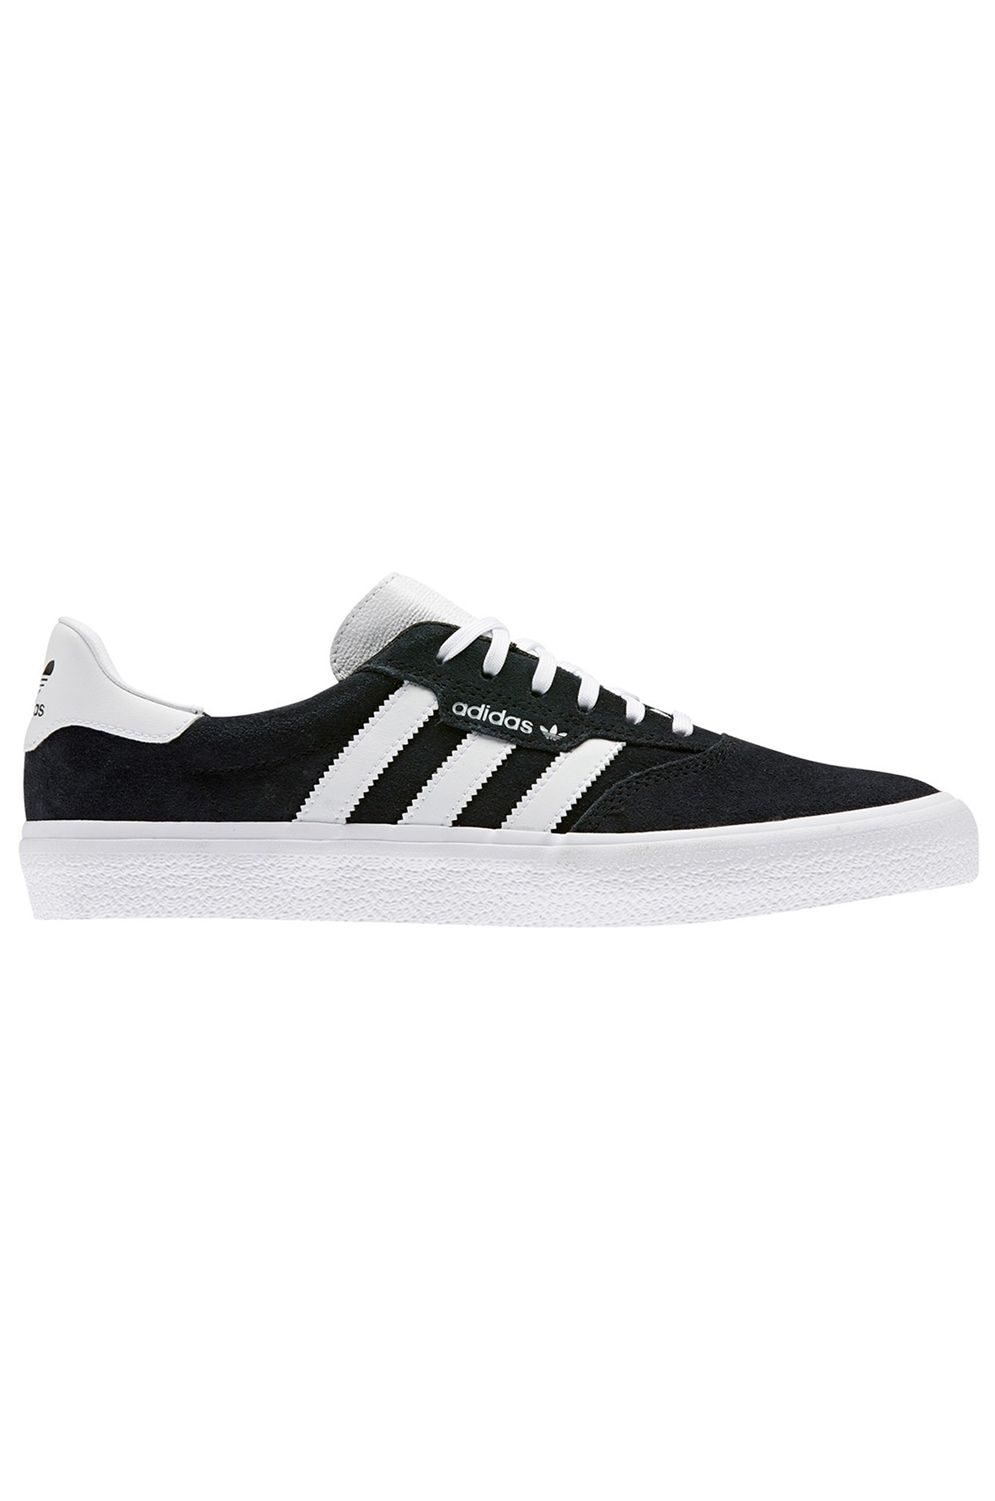 Tenis Adidas 3MC Core Black/Ftwr White/Gum4